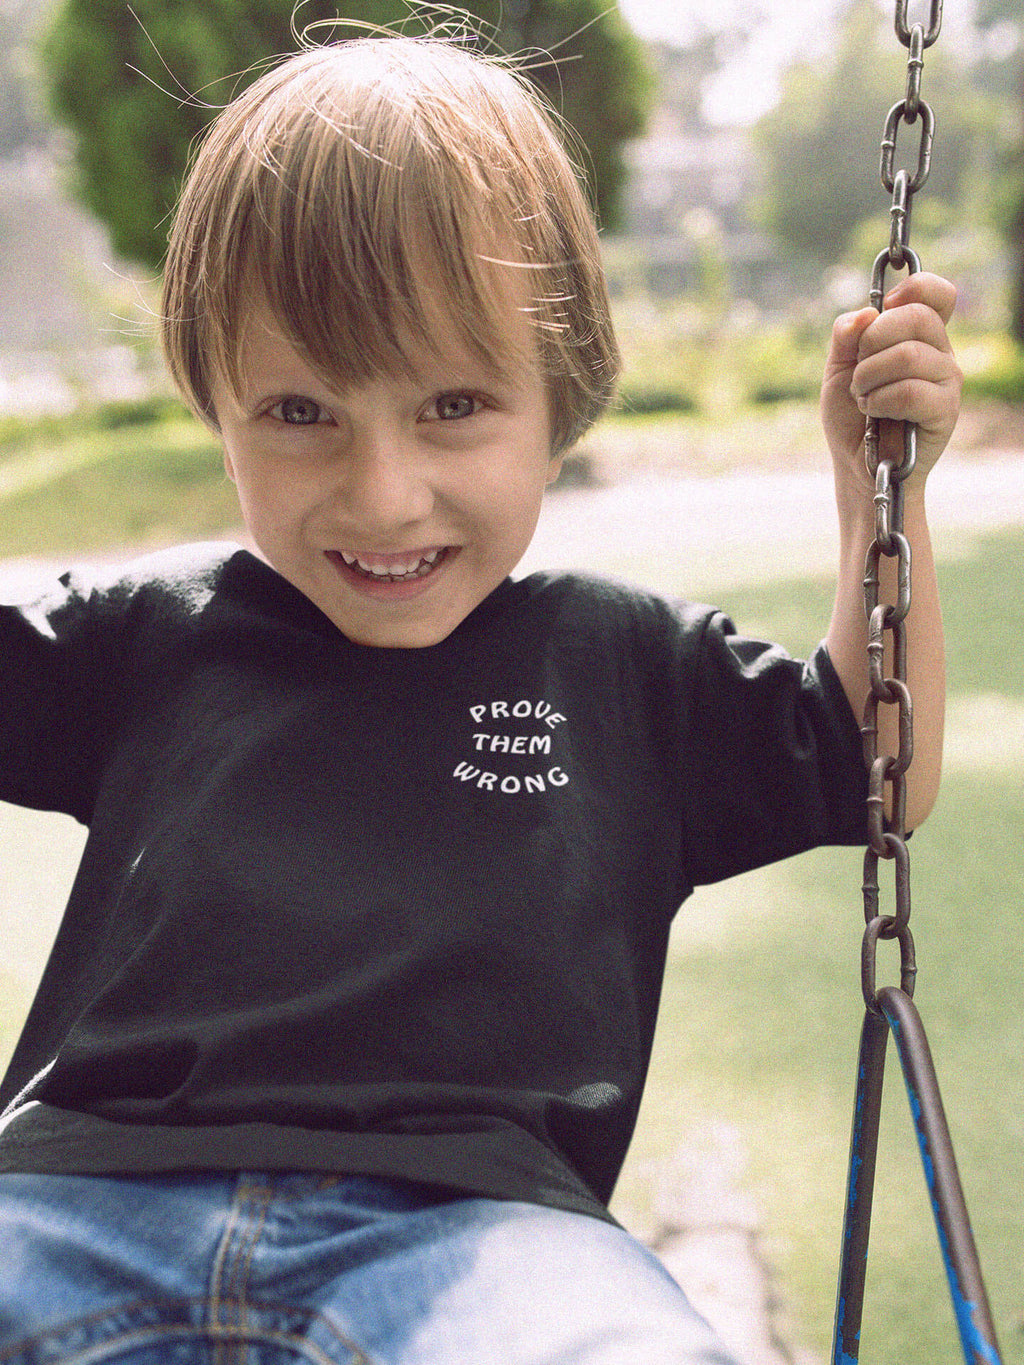 kid wearing prove them wrong t-shirt on swing